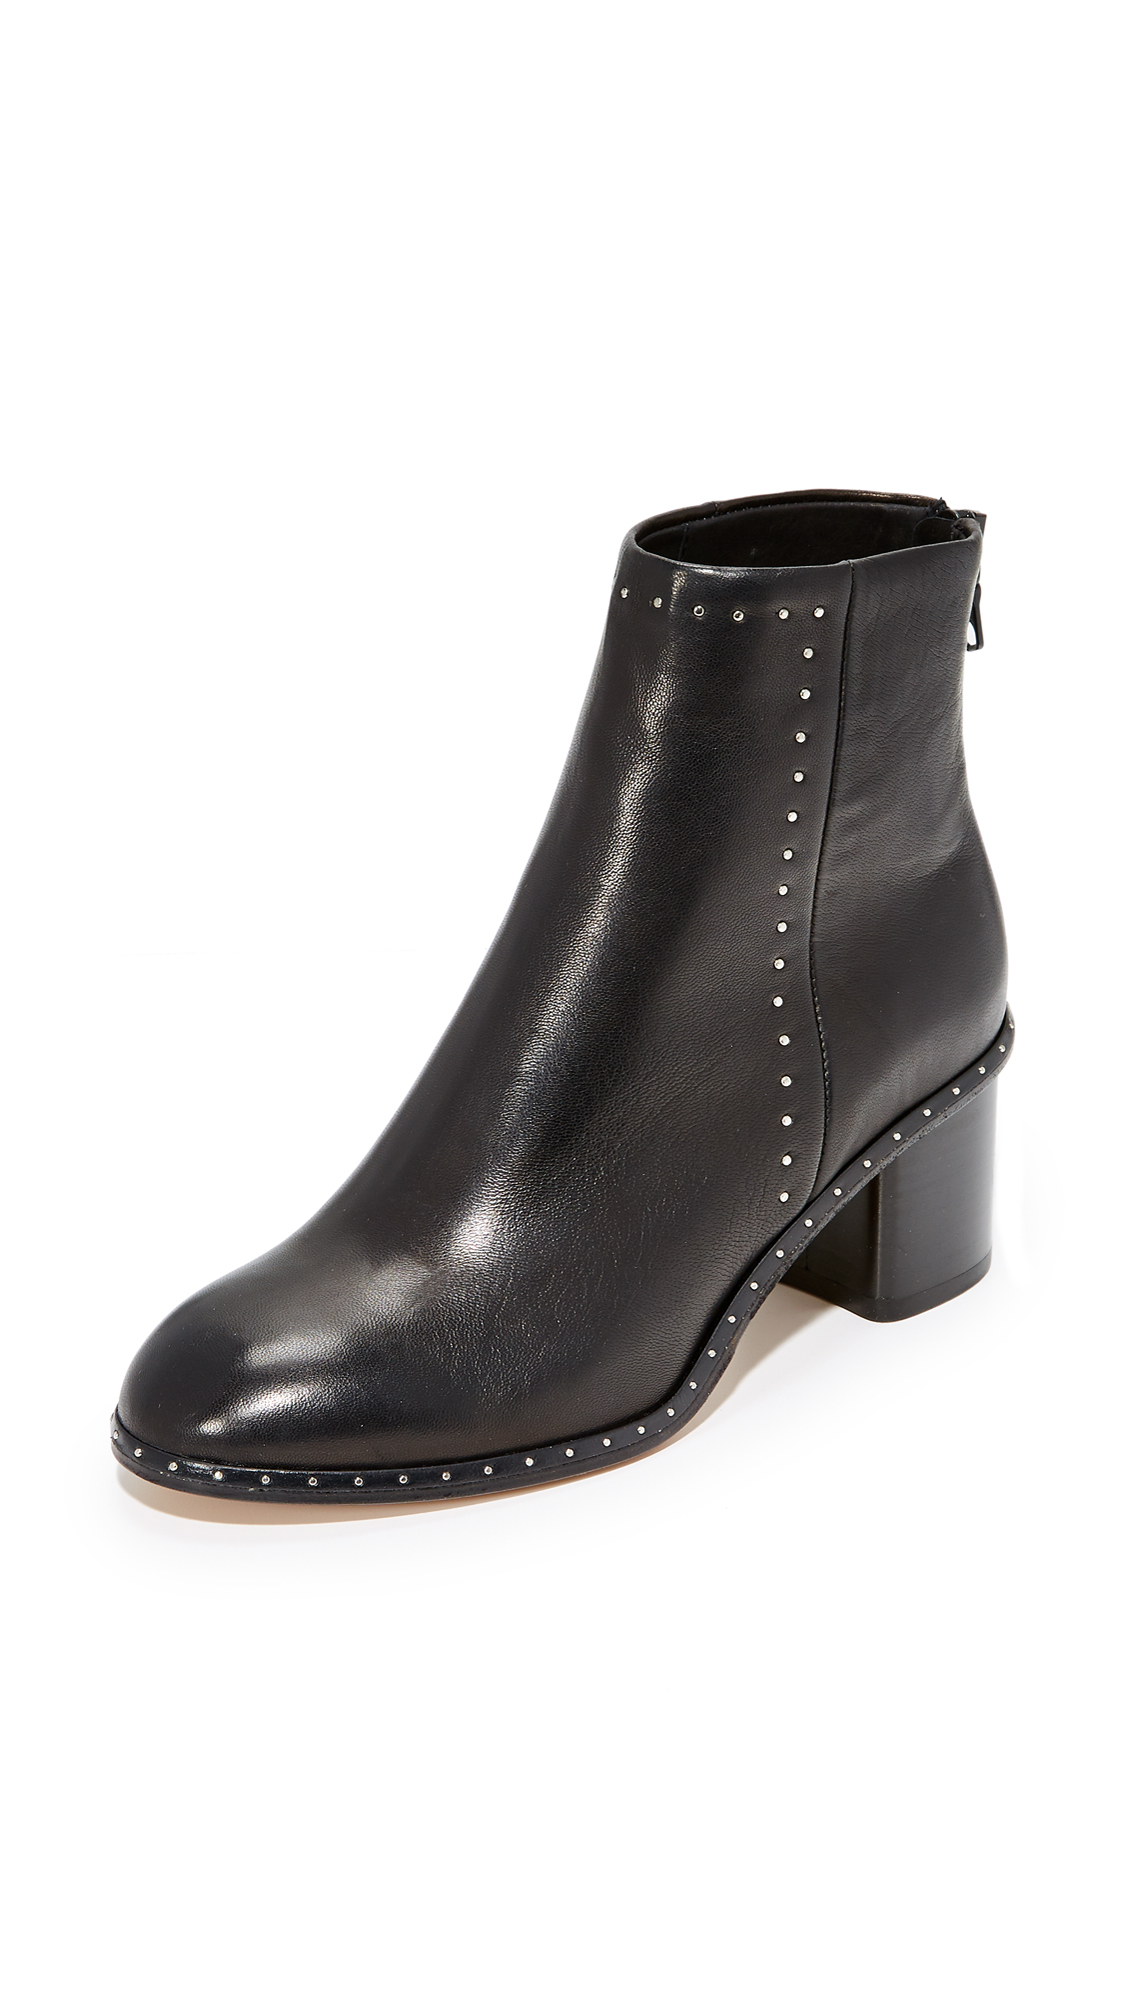 Rag & Bone Willow Stud Booties - Black